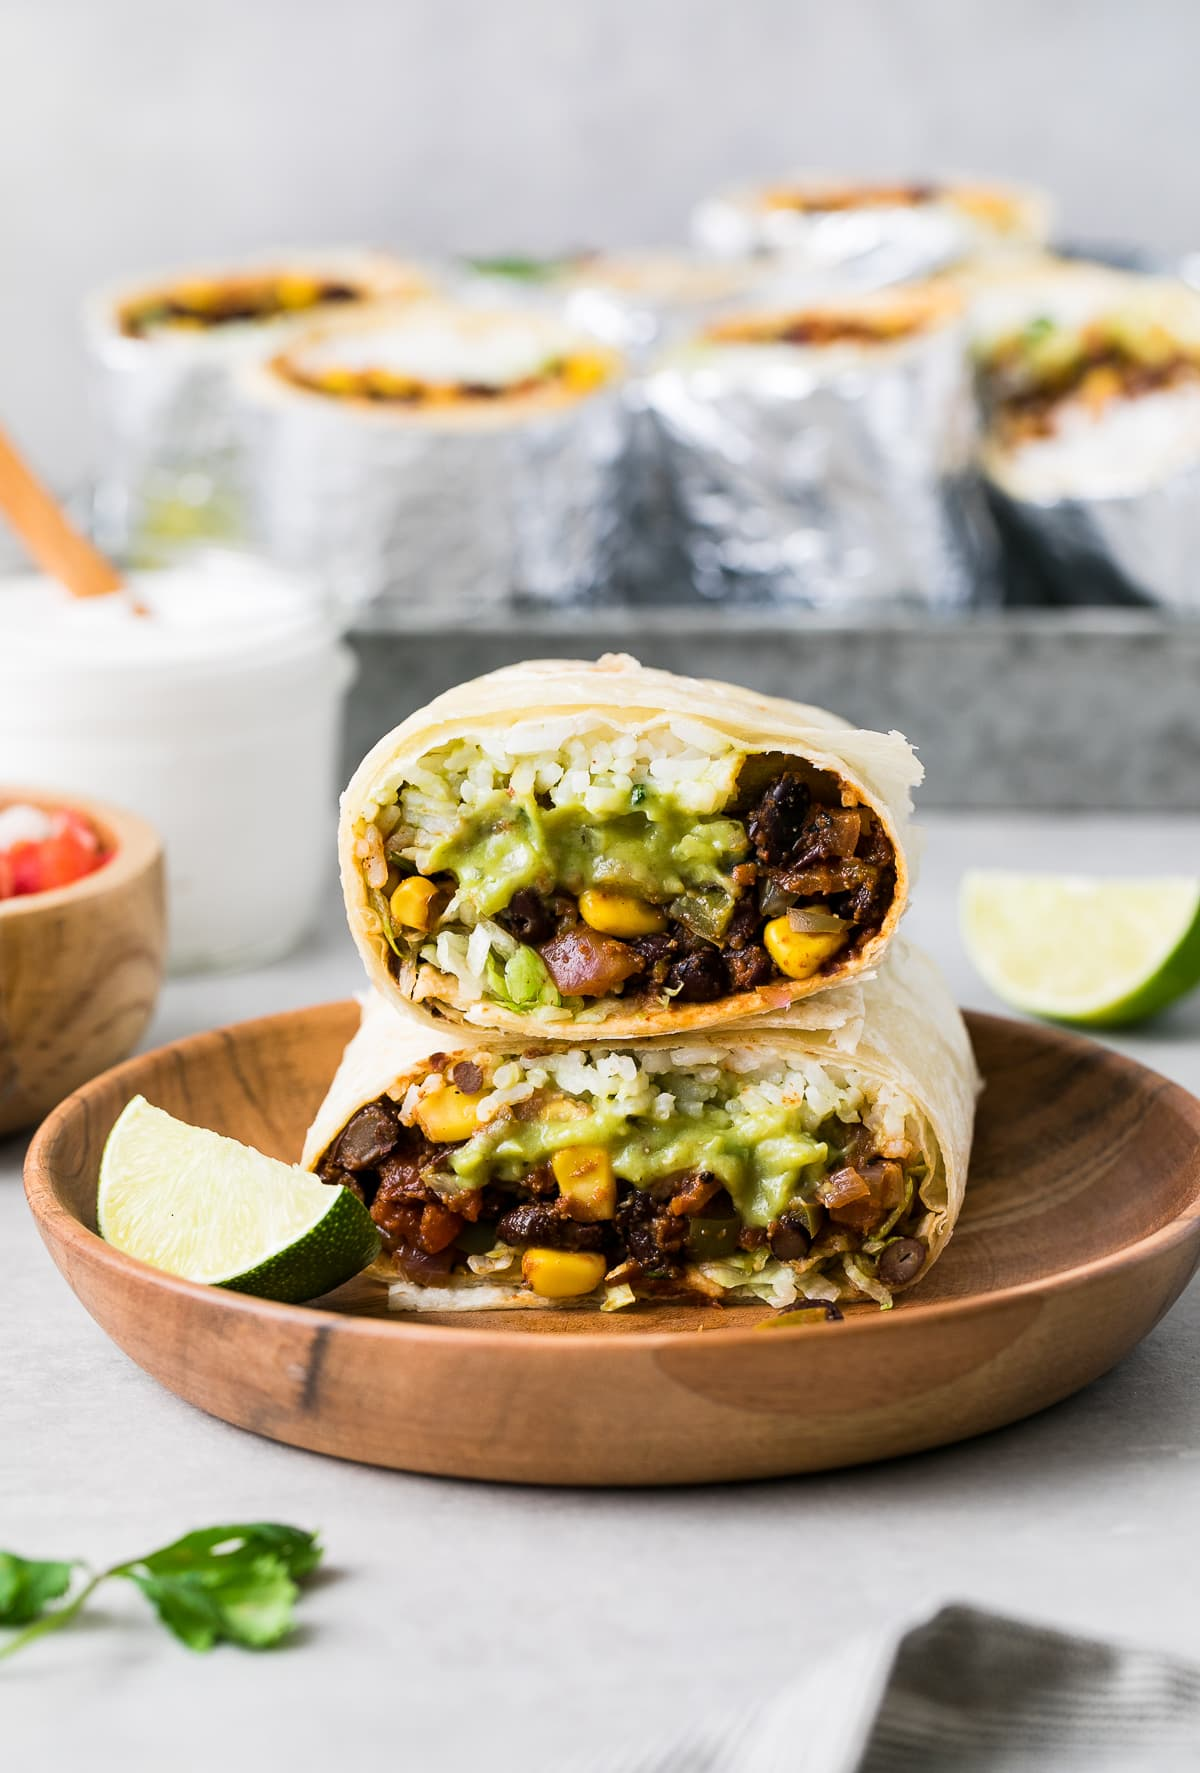 head on view of 2 halves of vegan burrito stacked on each other with items surrounding.